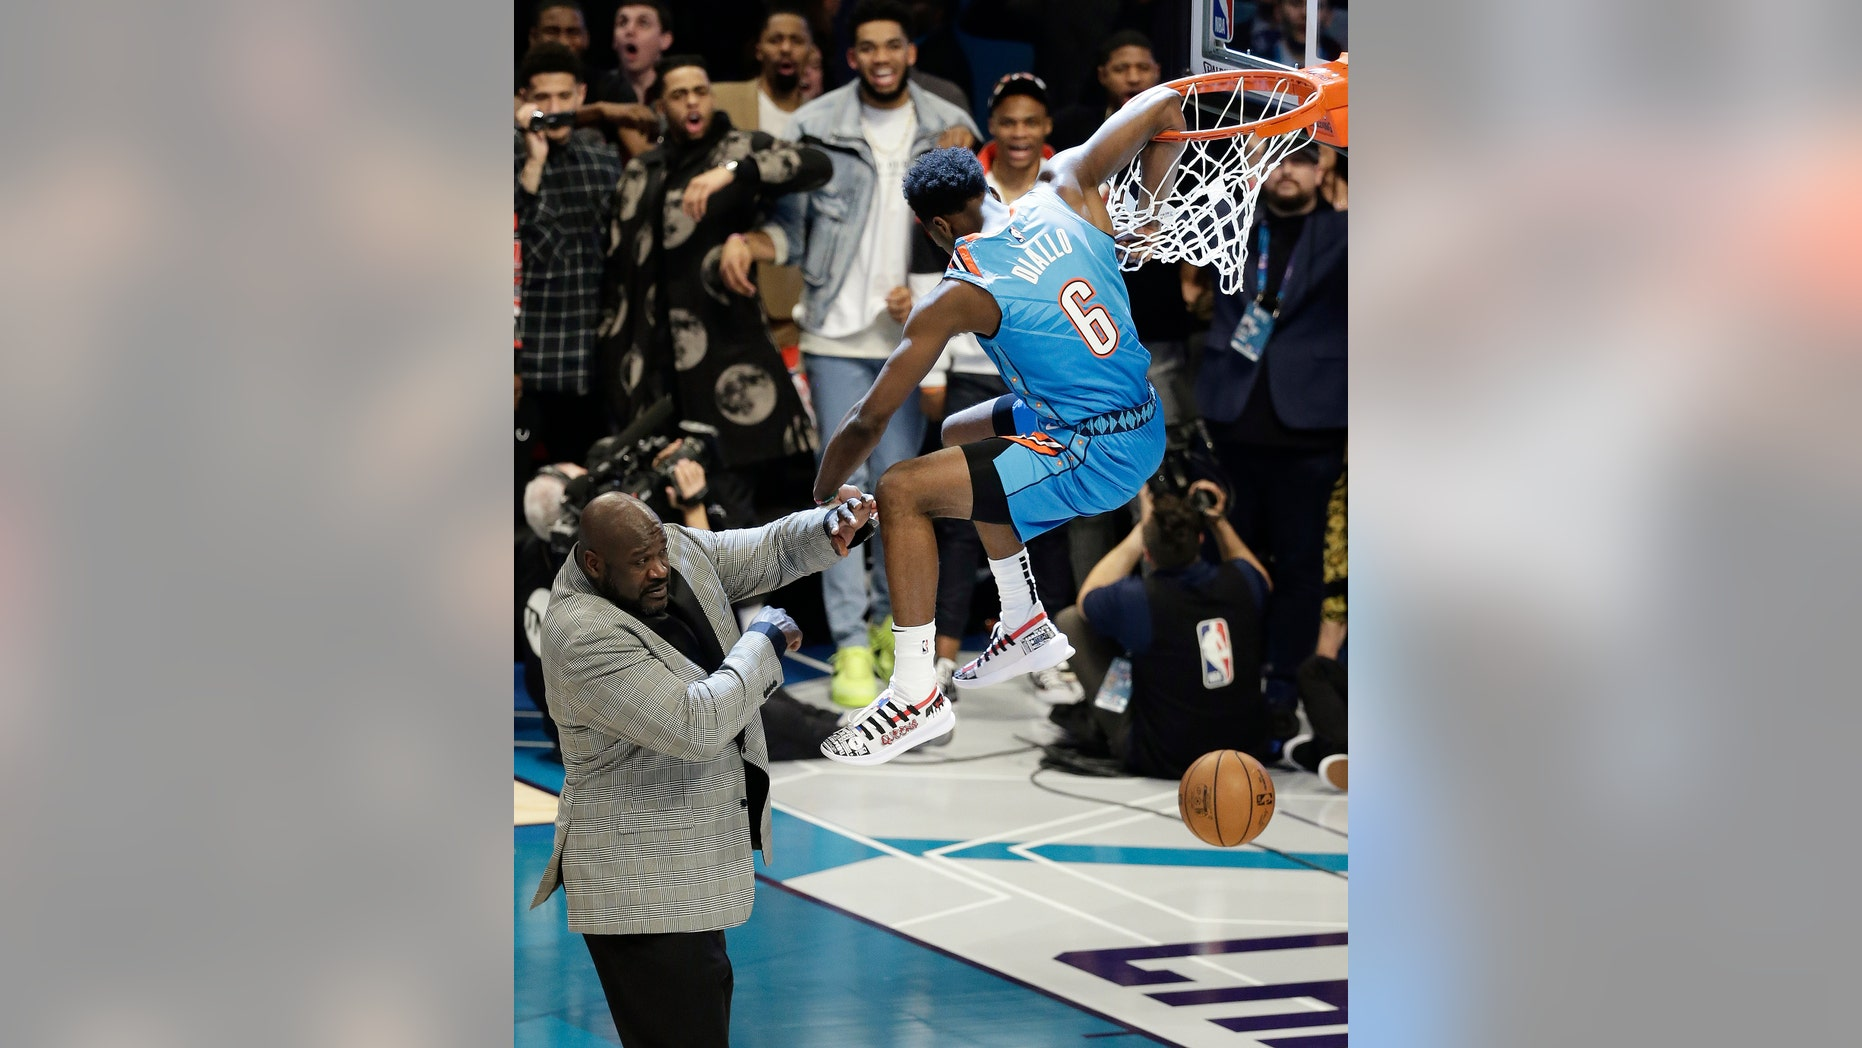 "Oklahoma City Thunder Hamidou Diallo leaps over former NBA player Shaquille O & Neal during the NBA All-Star Slam Dunk competition on Saturday, February 1<div class=""e3lan e3lan-in-post1""><script async src=""//pagead2.googlesyndication.com/pagead/js/adsbygoogle.js""></script>